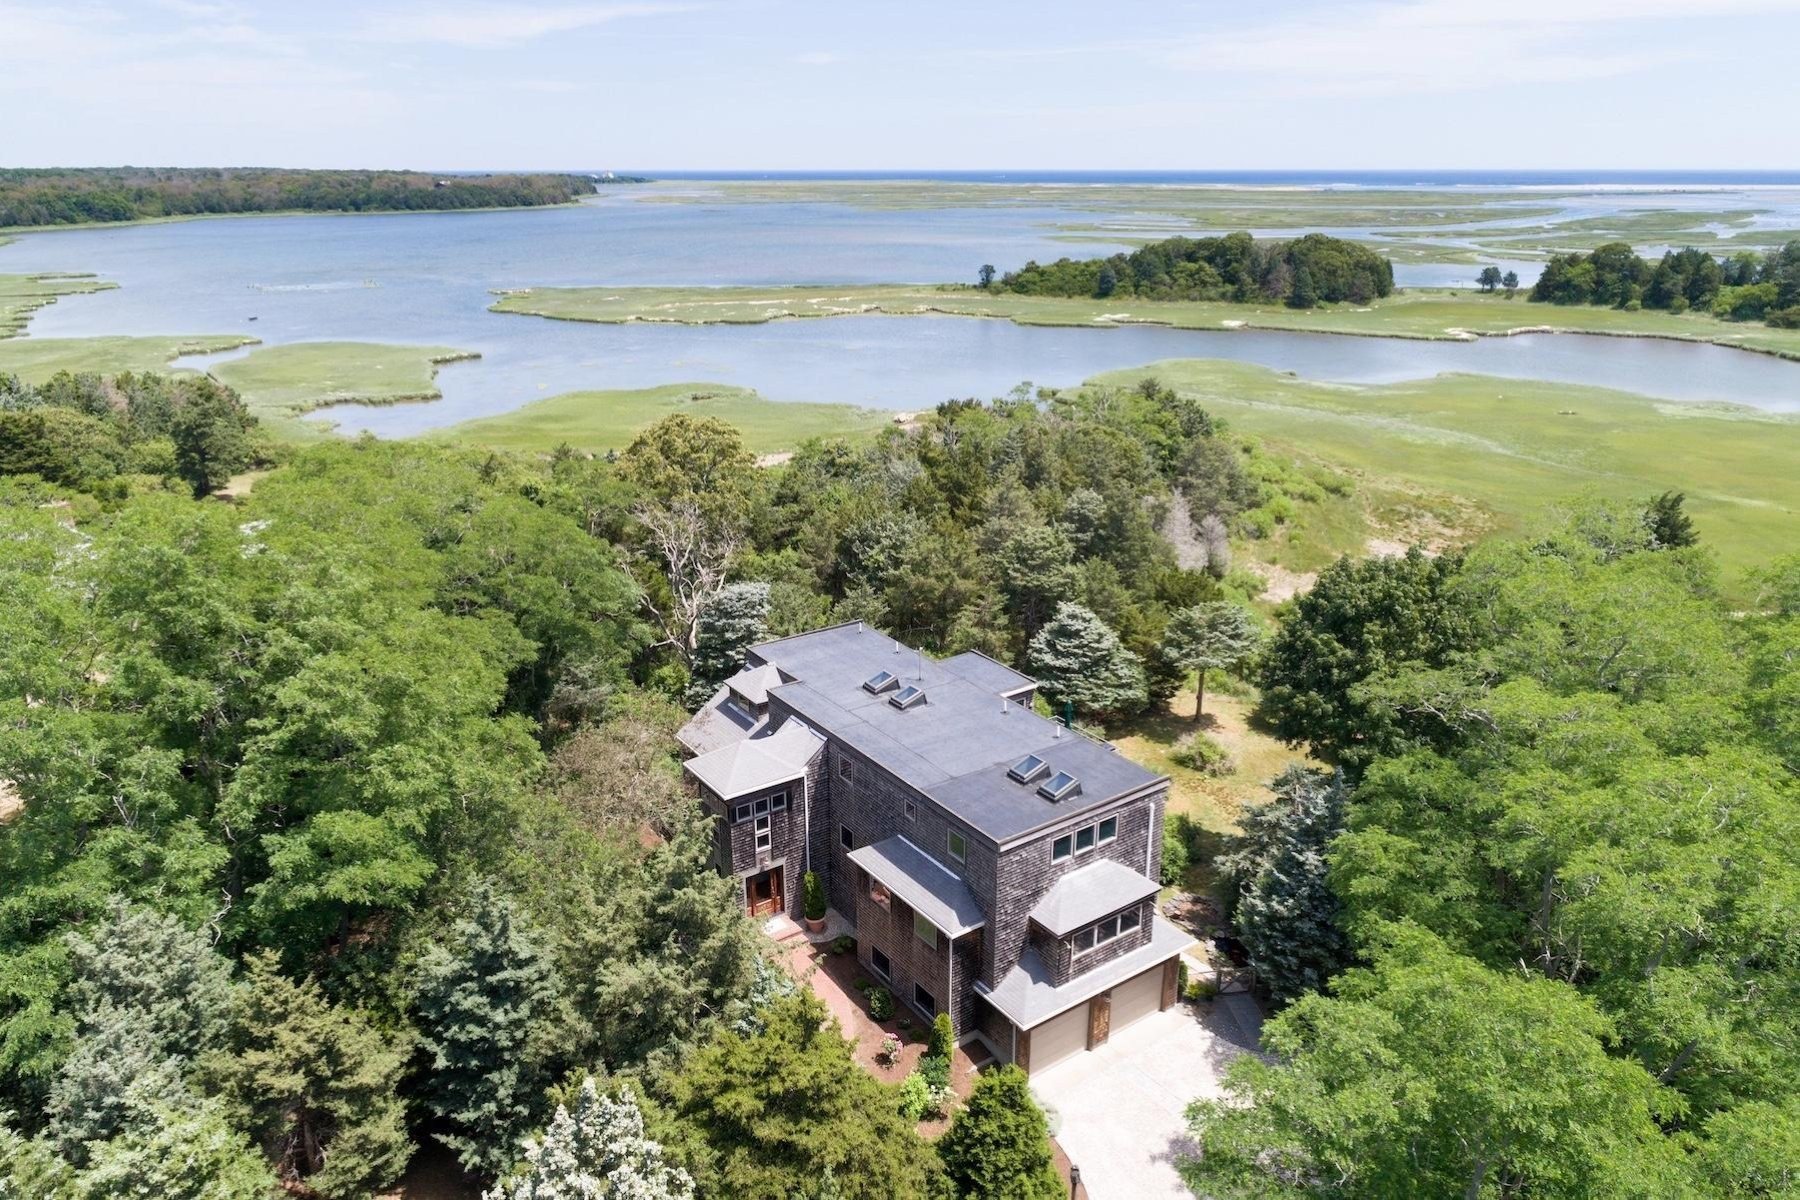 Single Family Home for Sale at Ocean & Marsh Views 4 Rabbit Run Eastham, Massachusetts 02642 United States